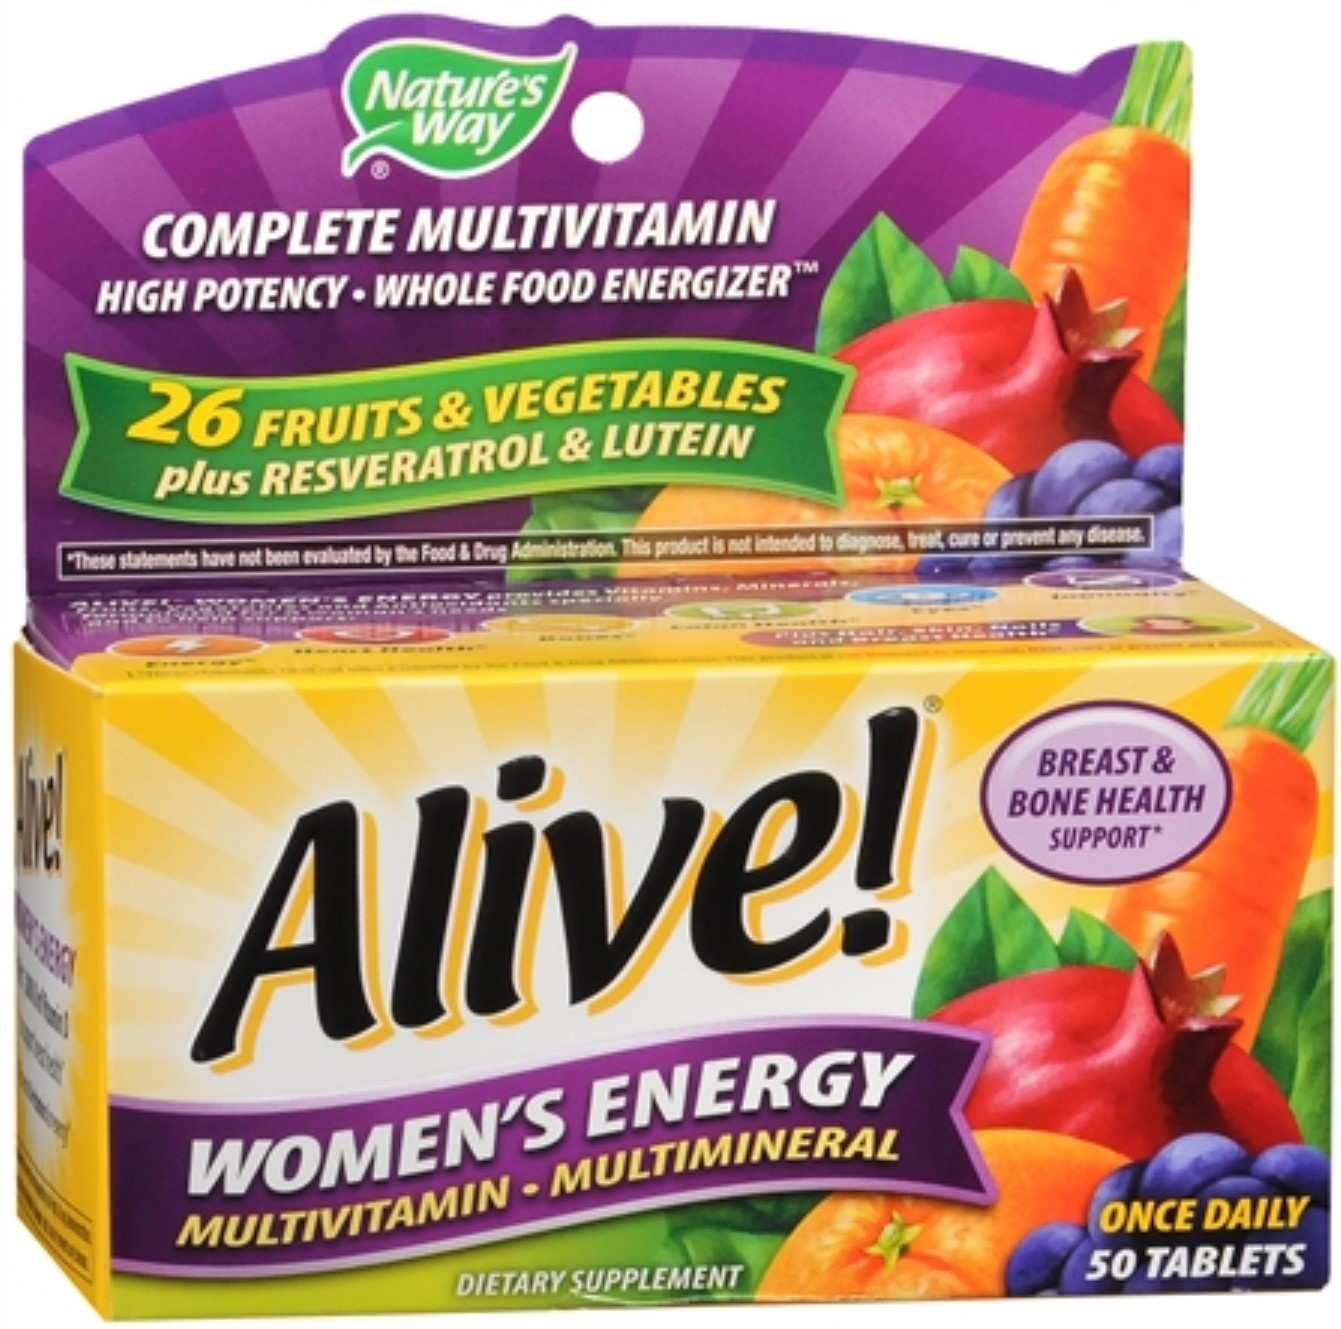 Alive! Tablets Women's Energy 50 Tablets (Pack of 4)